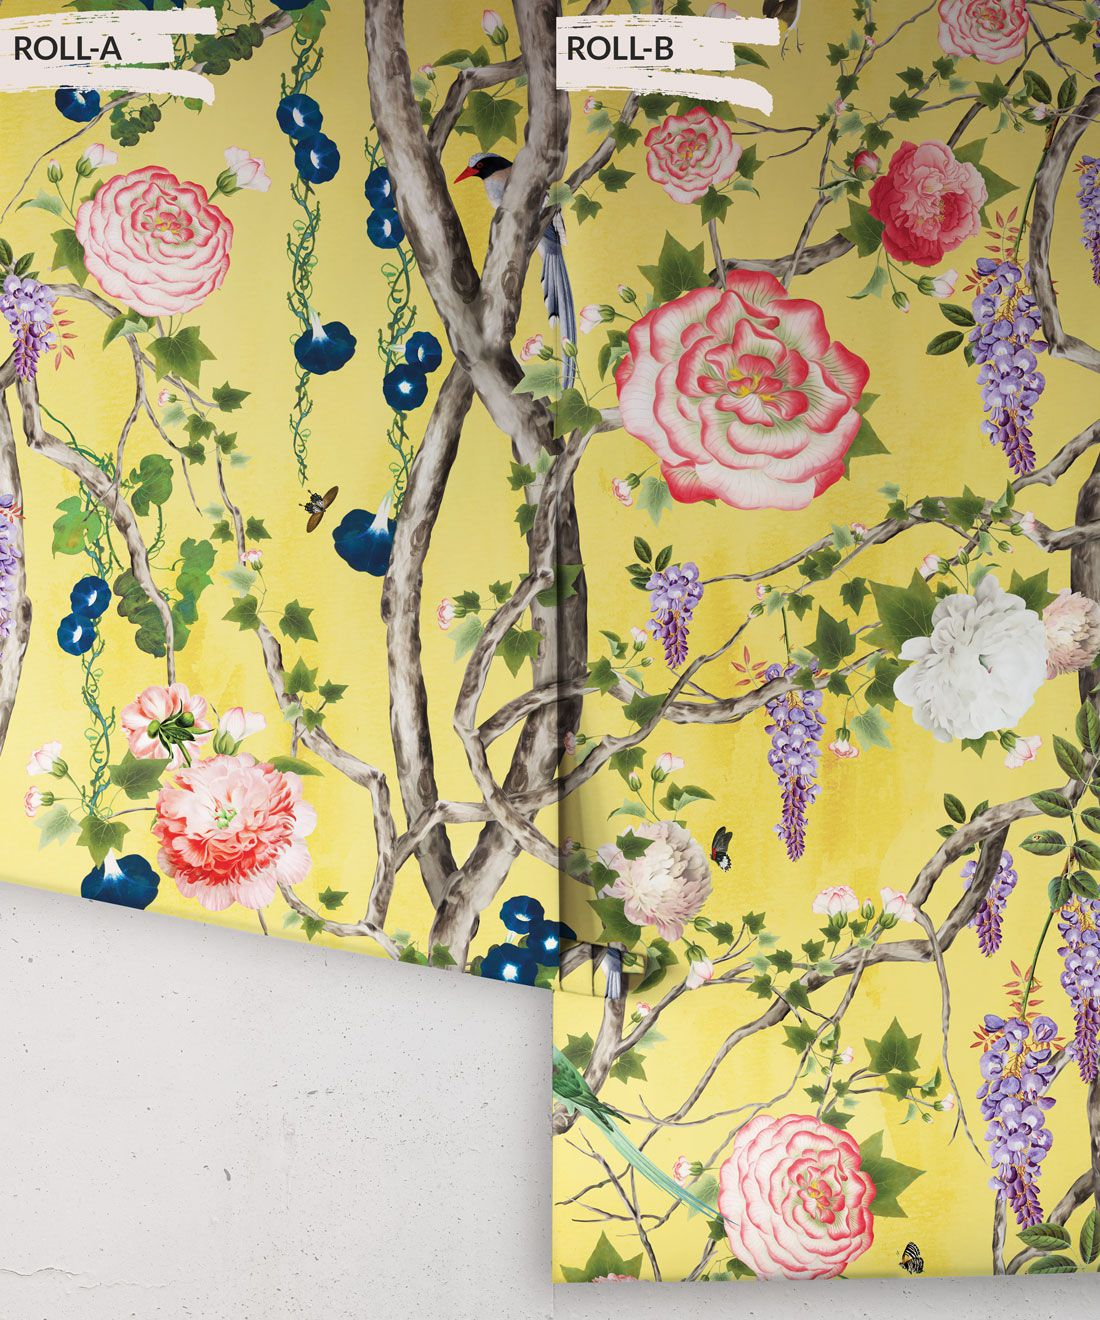 Empress Wallpaper • Romantic Wallpaper • Floral Wallpaper • Chinoiserie Wallpaper • Honey Yellow colour wallpaper rolls